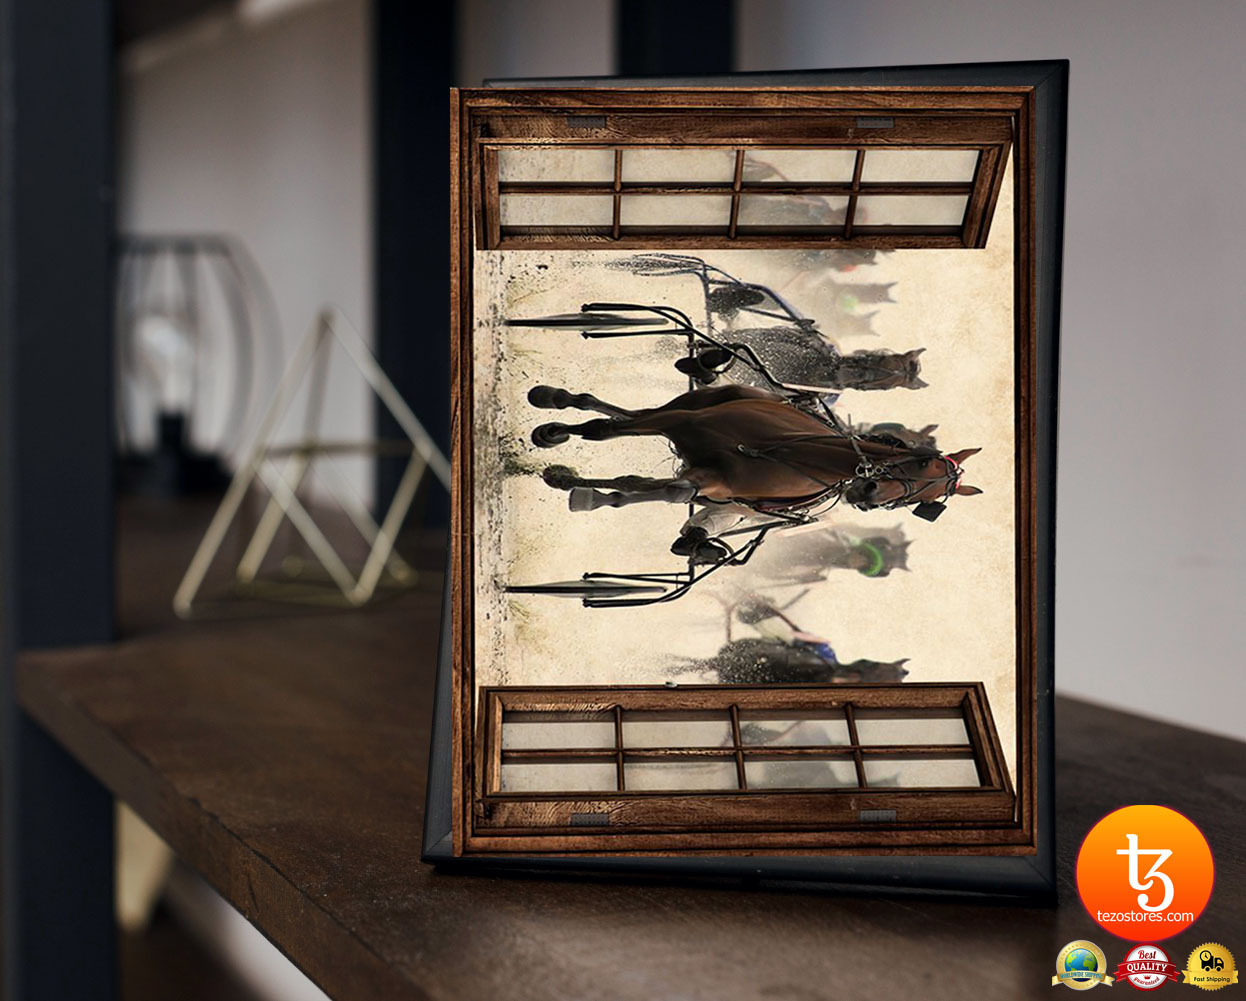 Harness racing view window poster 23